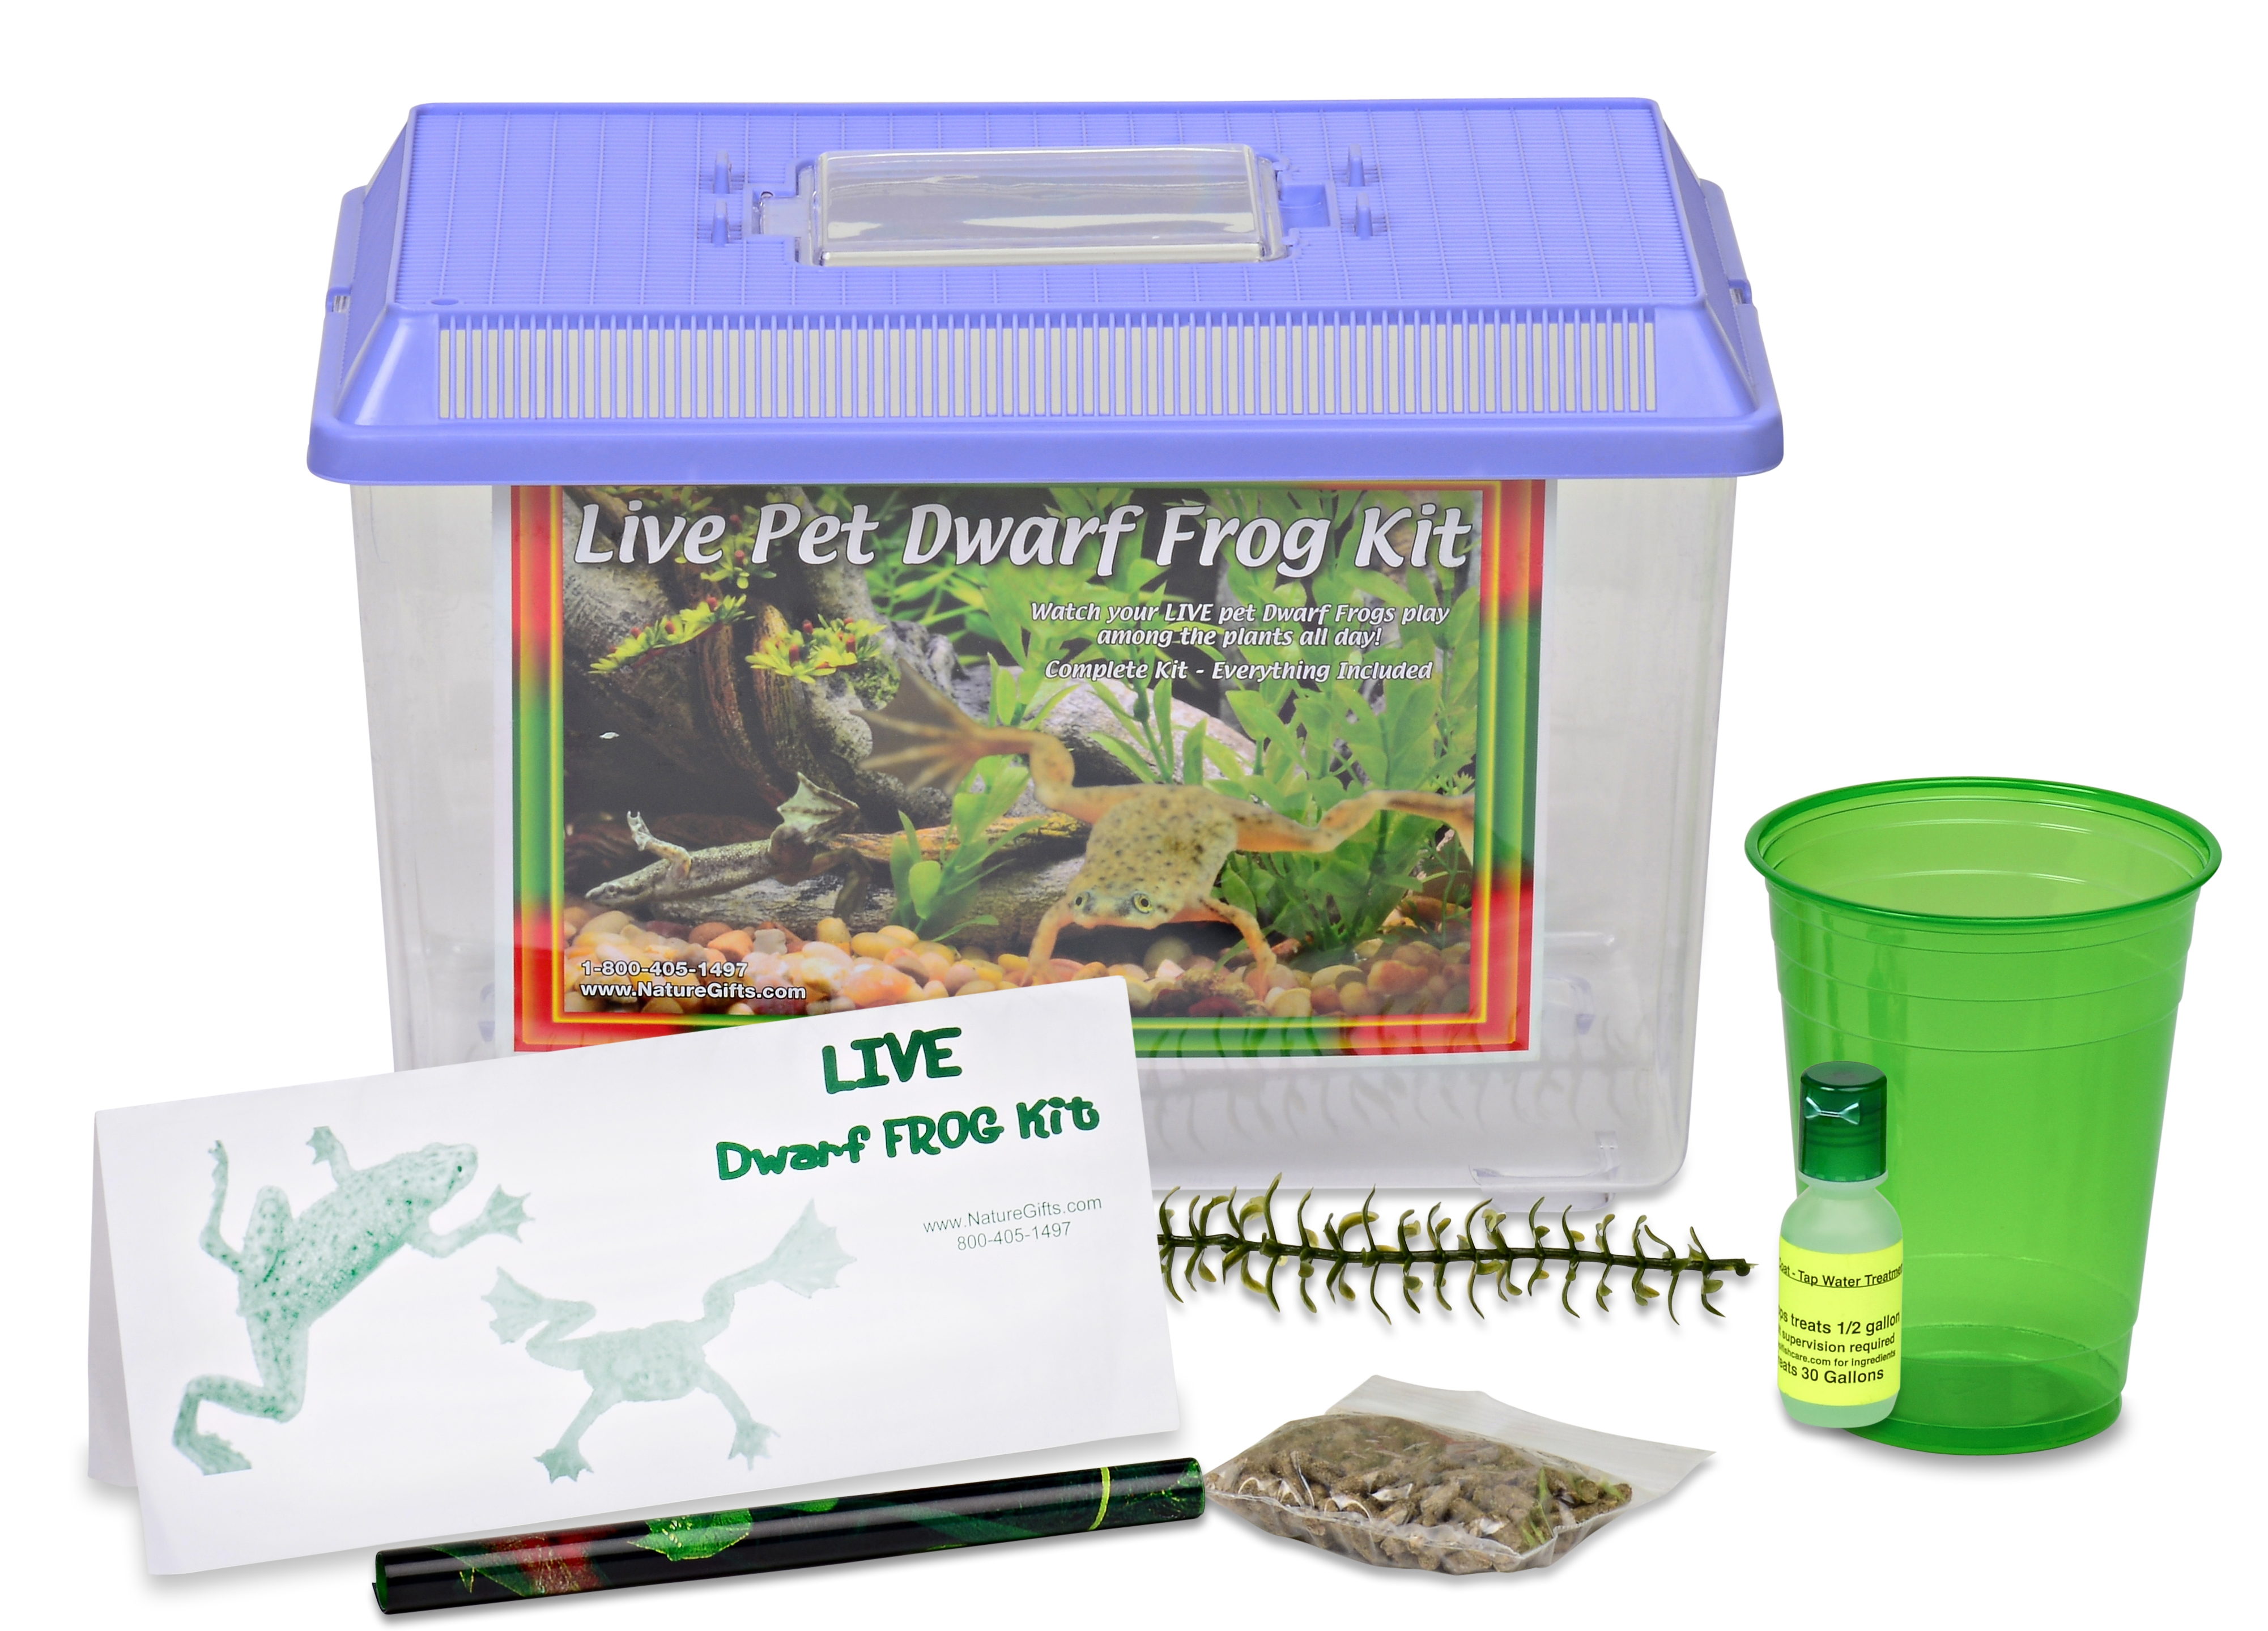 live pet aquatic african dwarf frogs complete kit butterfly art